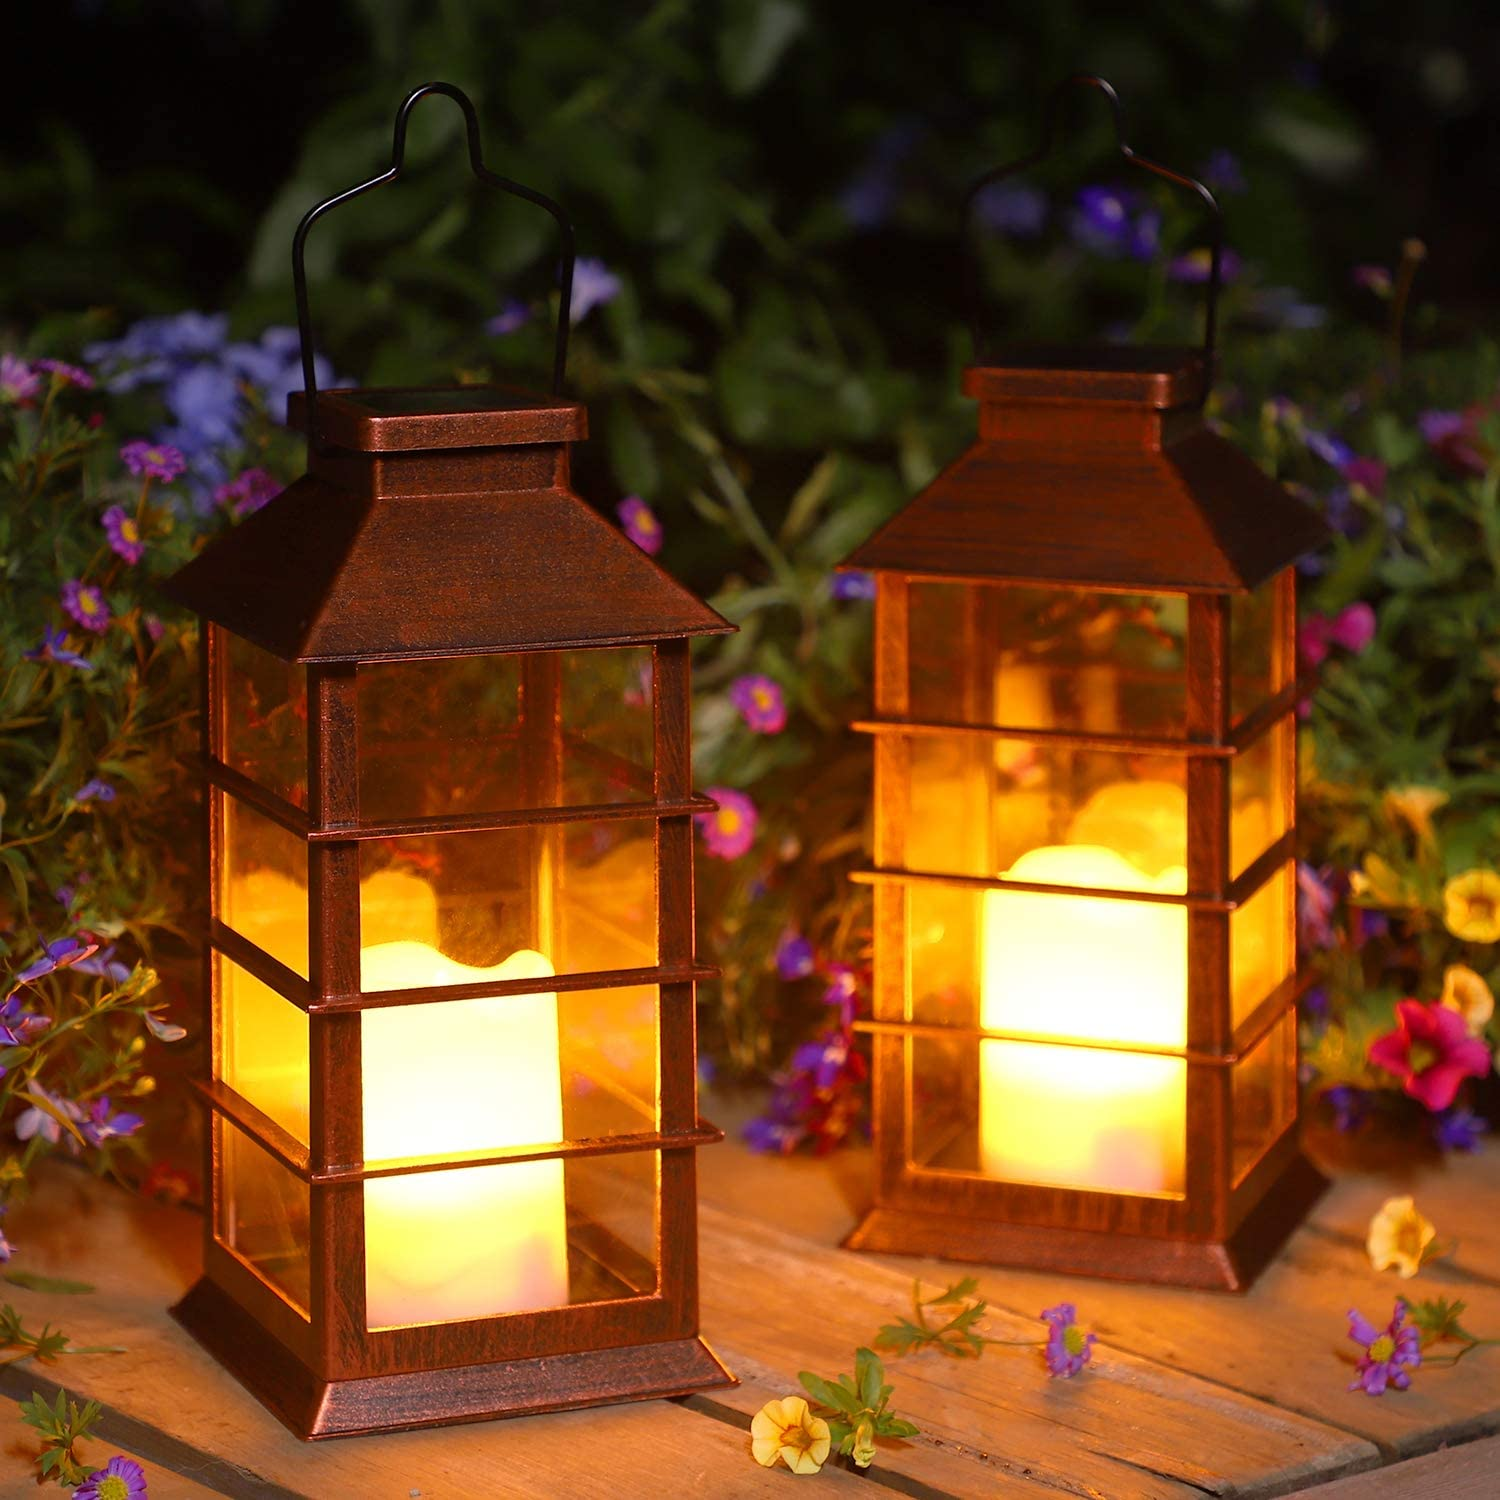 2 Pack Solar Lantern,Outdoor Garden Hanging Lantern-Waterproof LED Decorative Plastic Flickering Flameless Candle Mission Lights for Table,Outdoor,Party